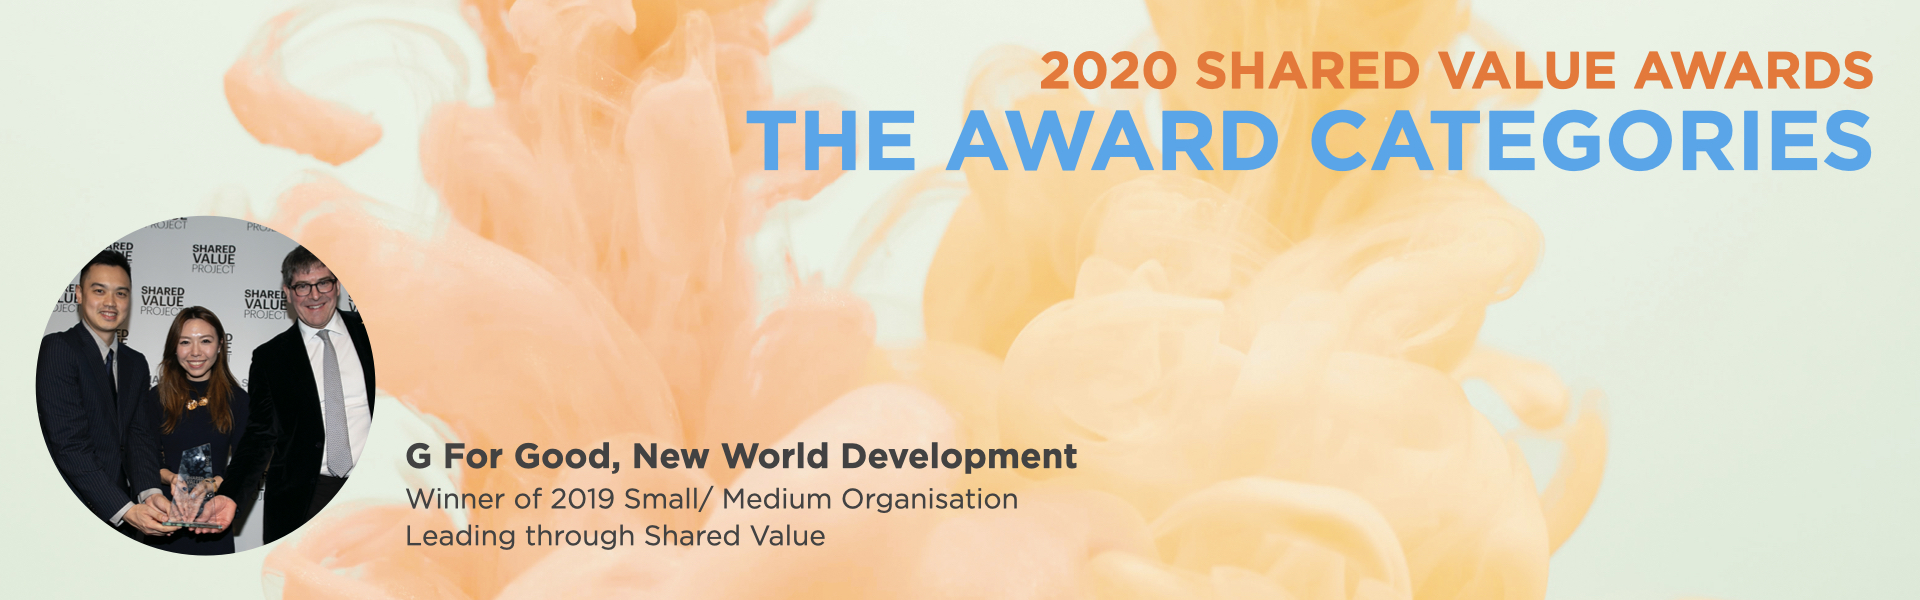 Shared Value Awards categories